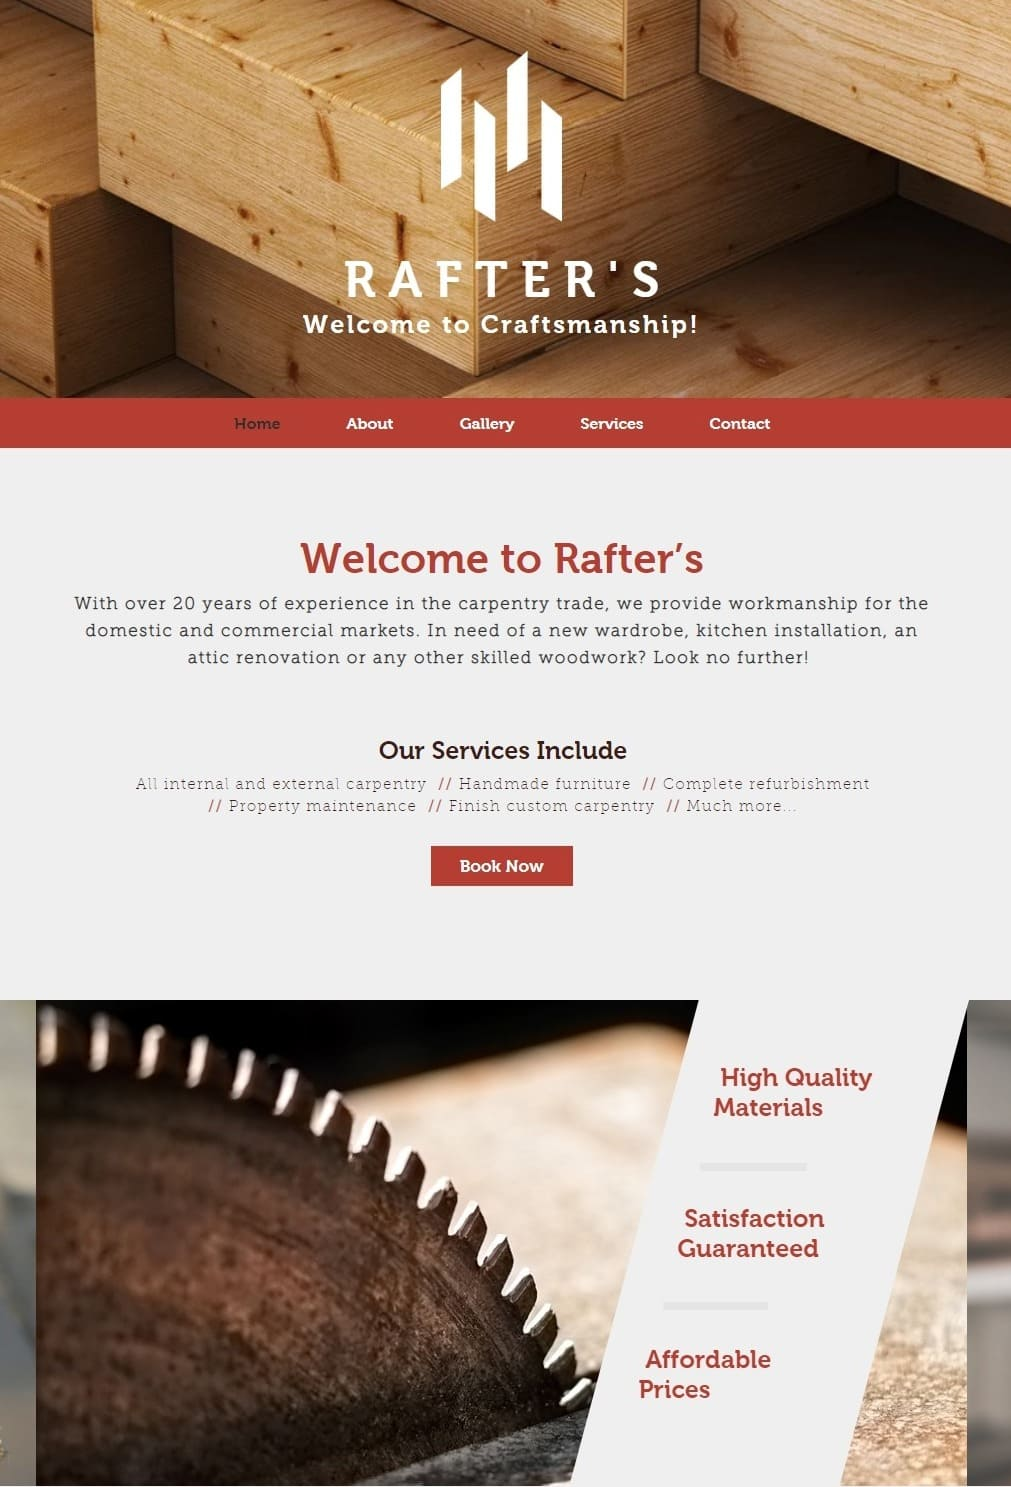 6 Best Wix Templates For Architect Websites-image6